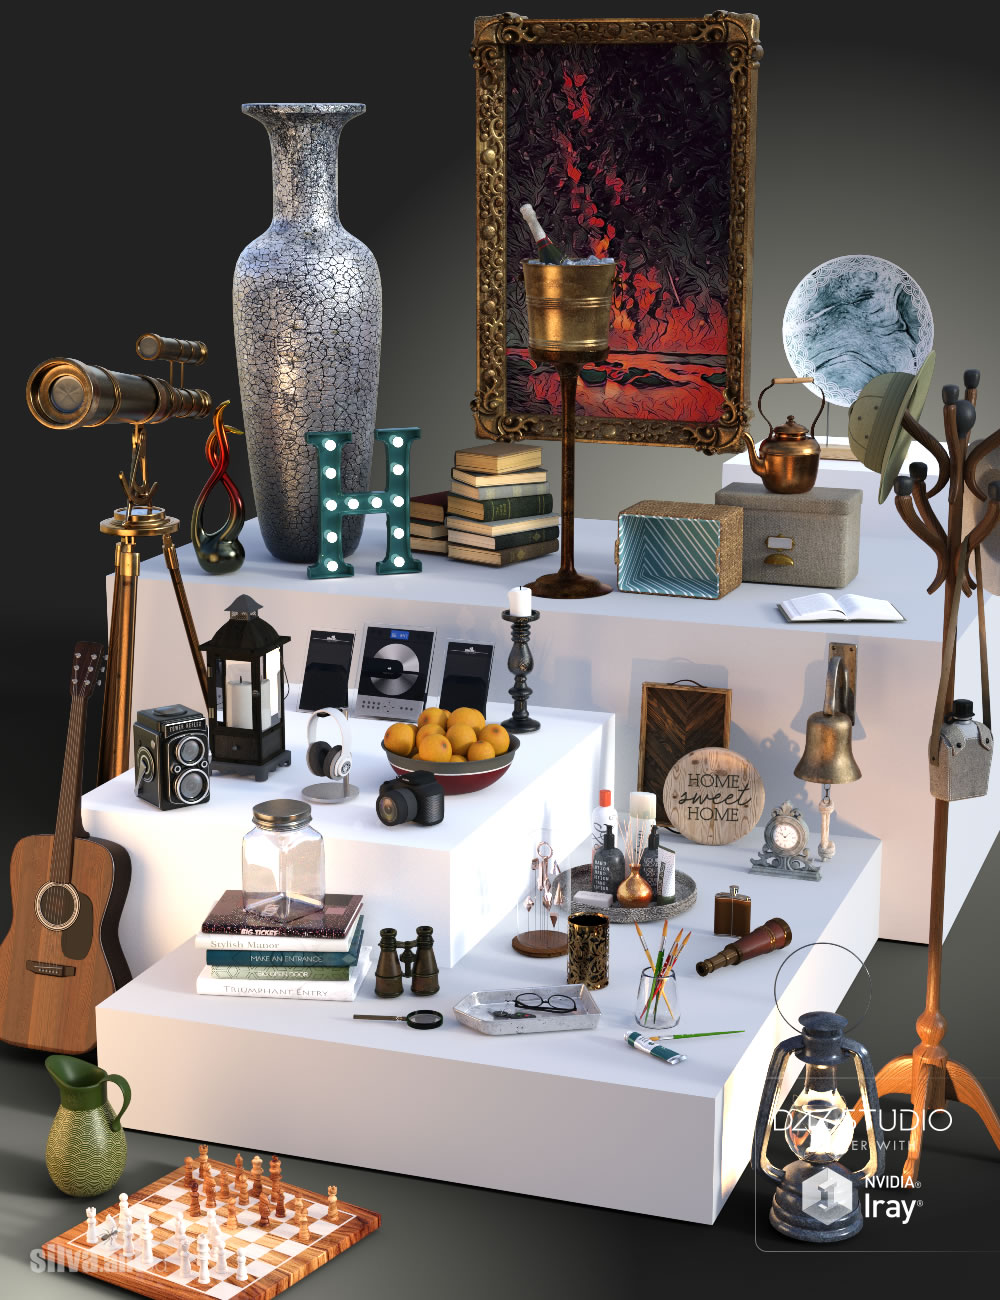 Collection of Decor Objects by: SilvaAnt3d, 3D Models by Daz 3D